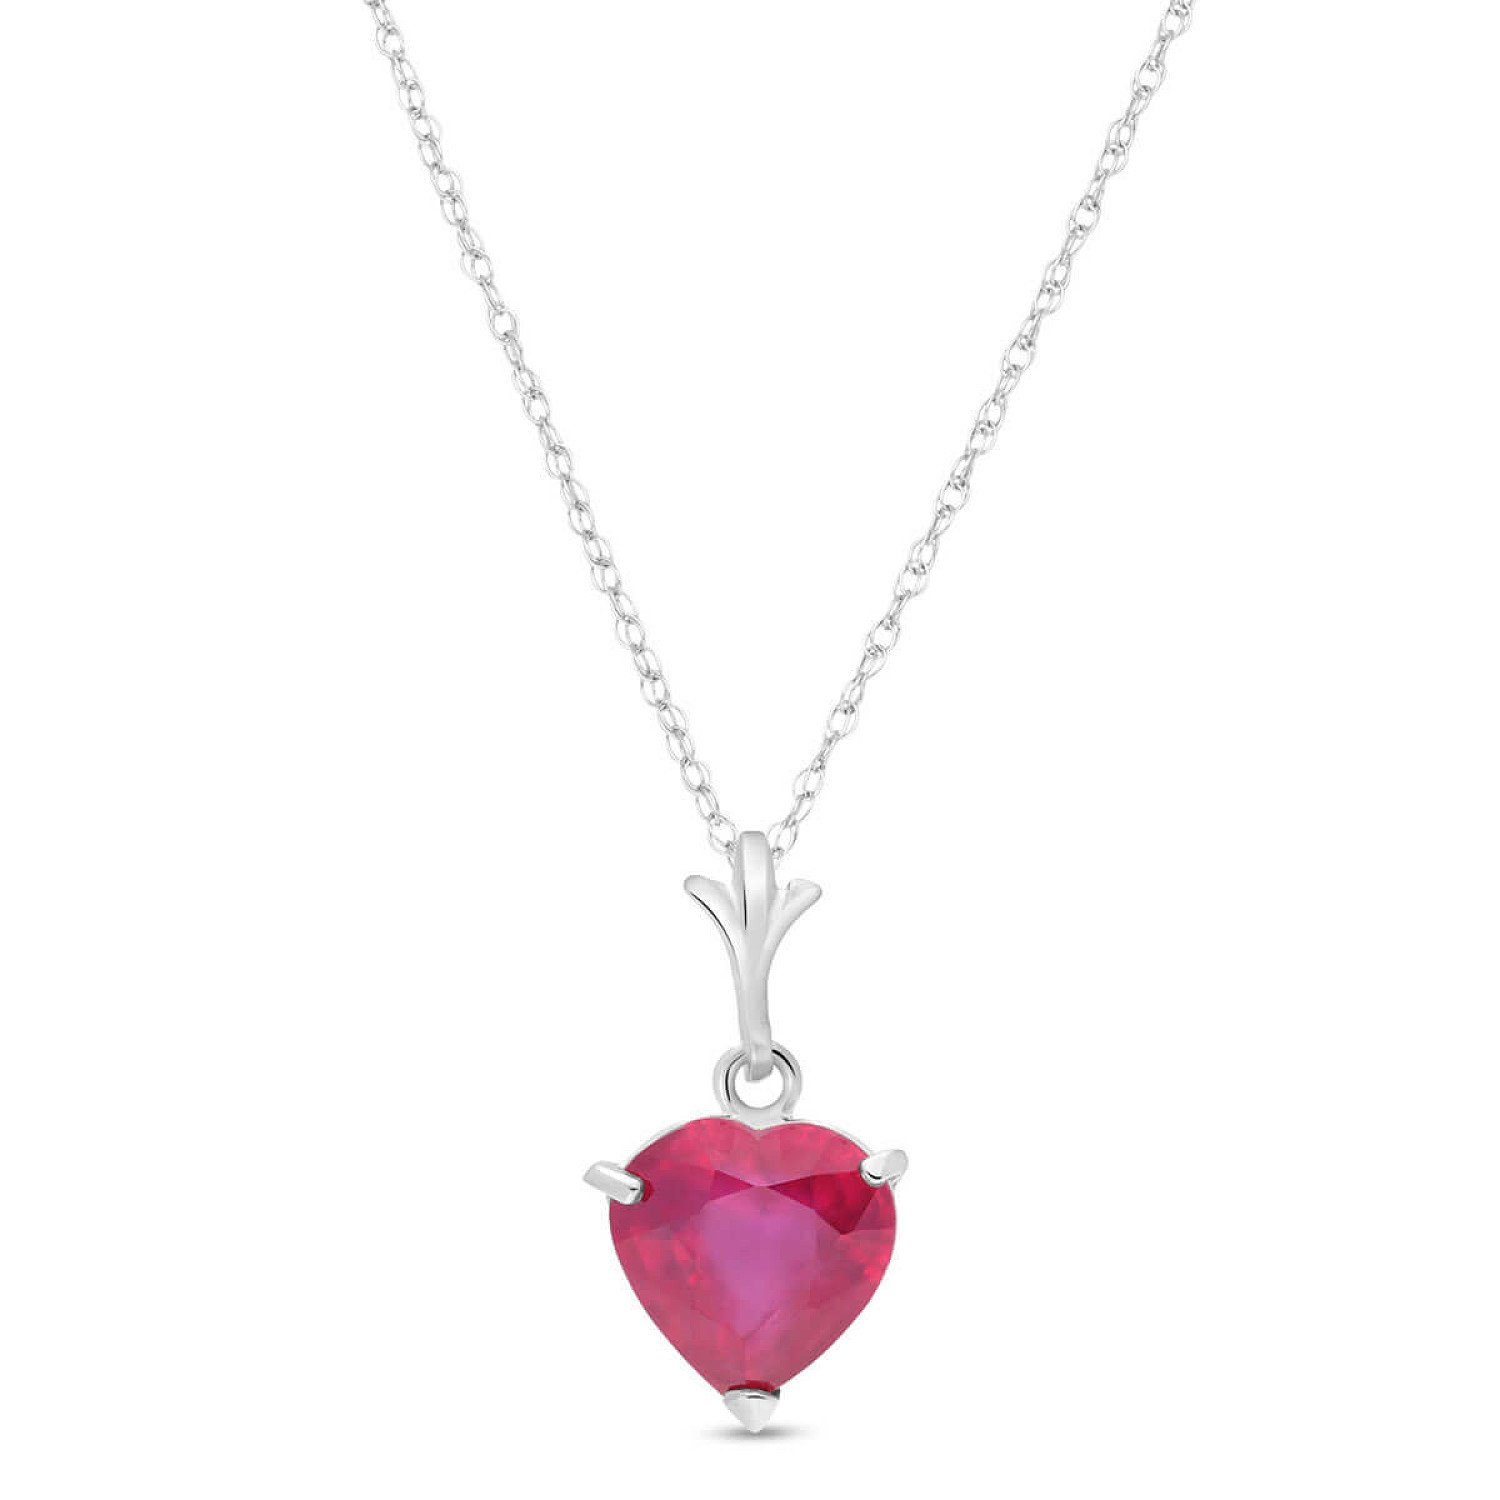 Best-Selling Ruby Heart Pendant Necklace!